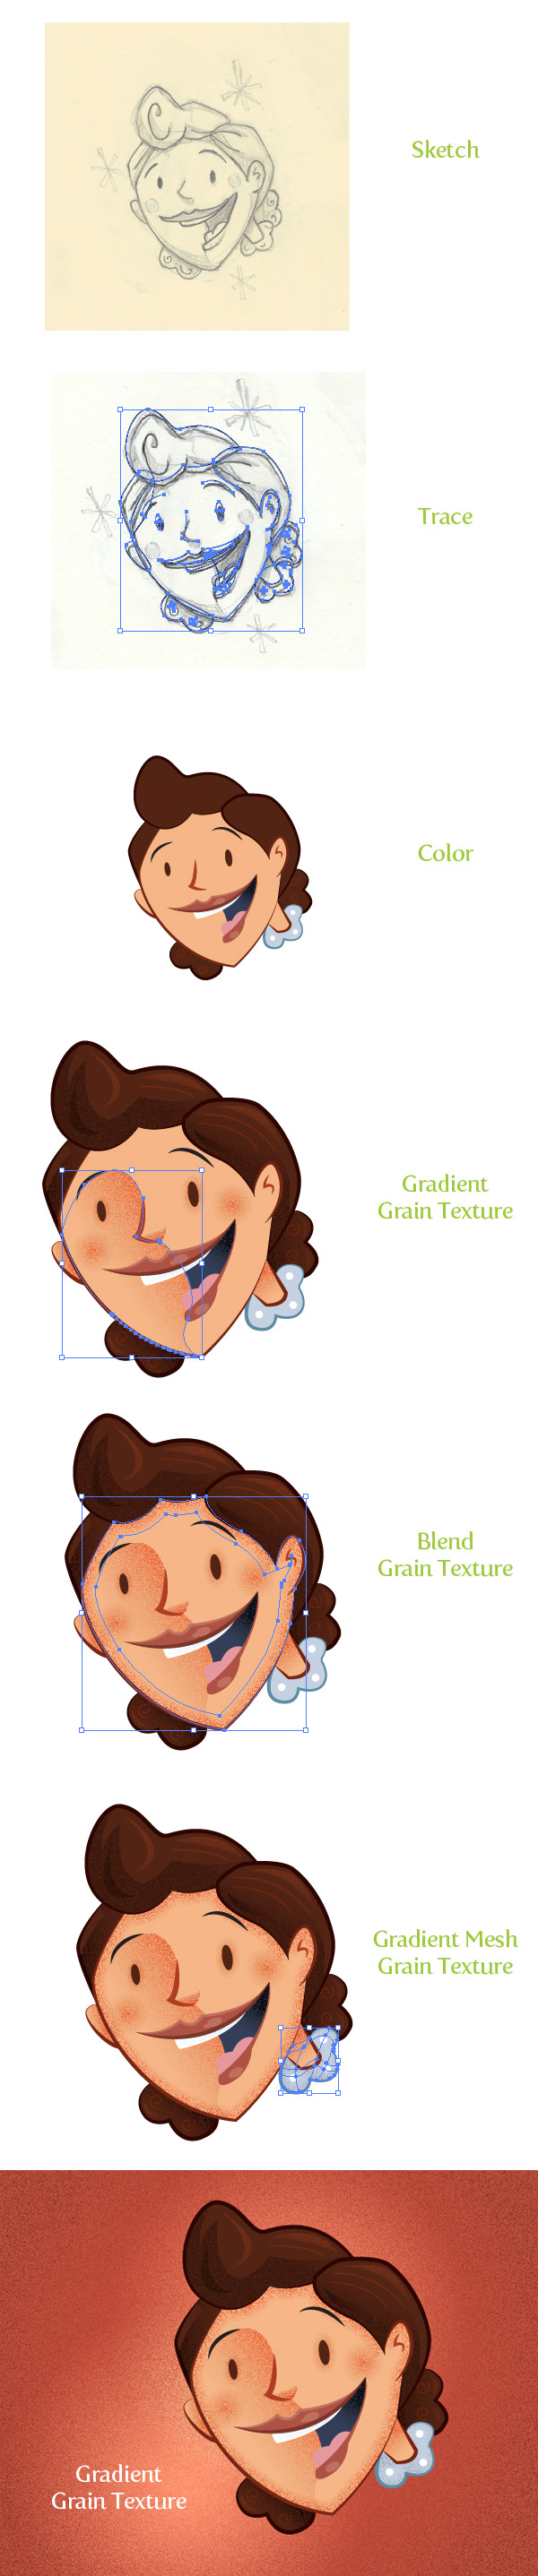 Grain Process